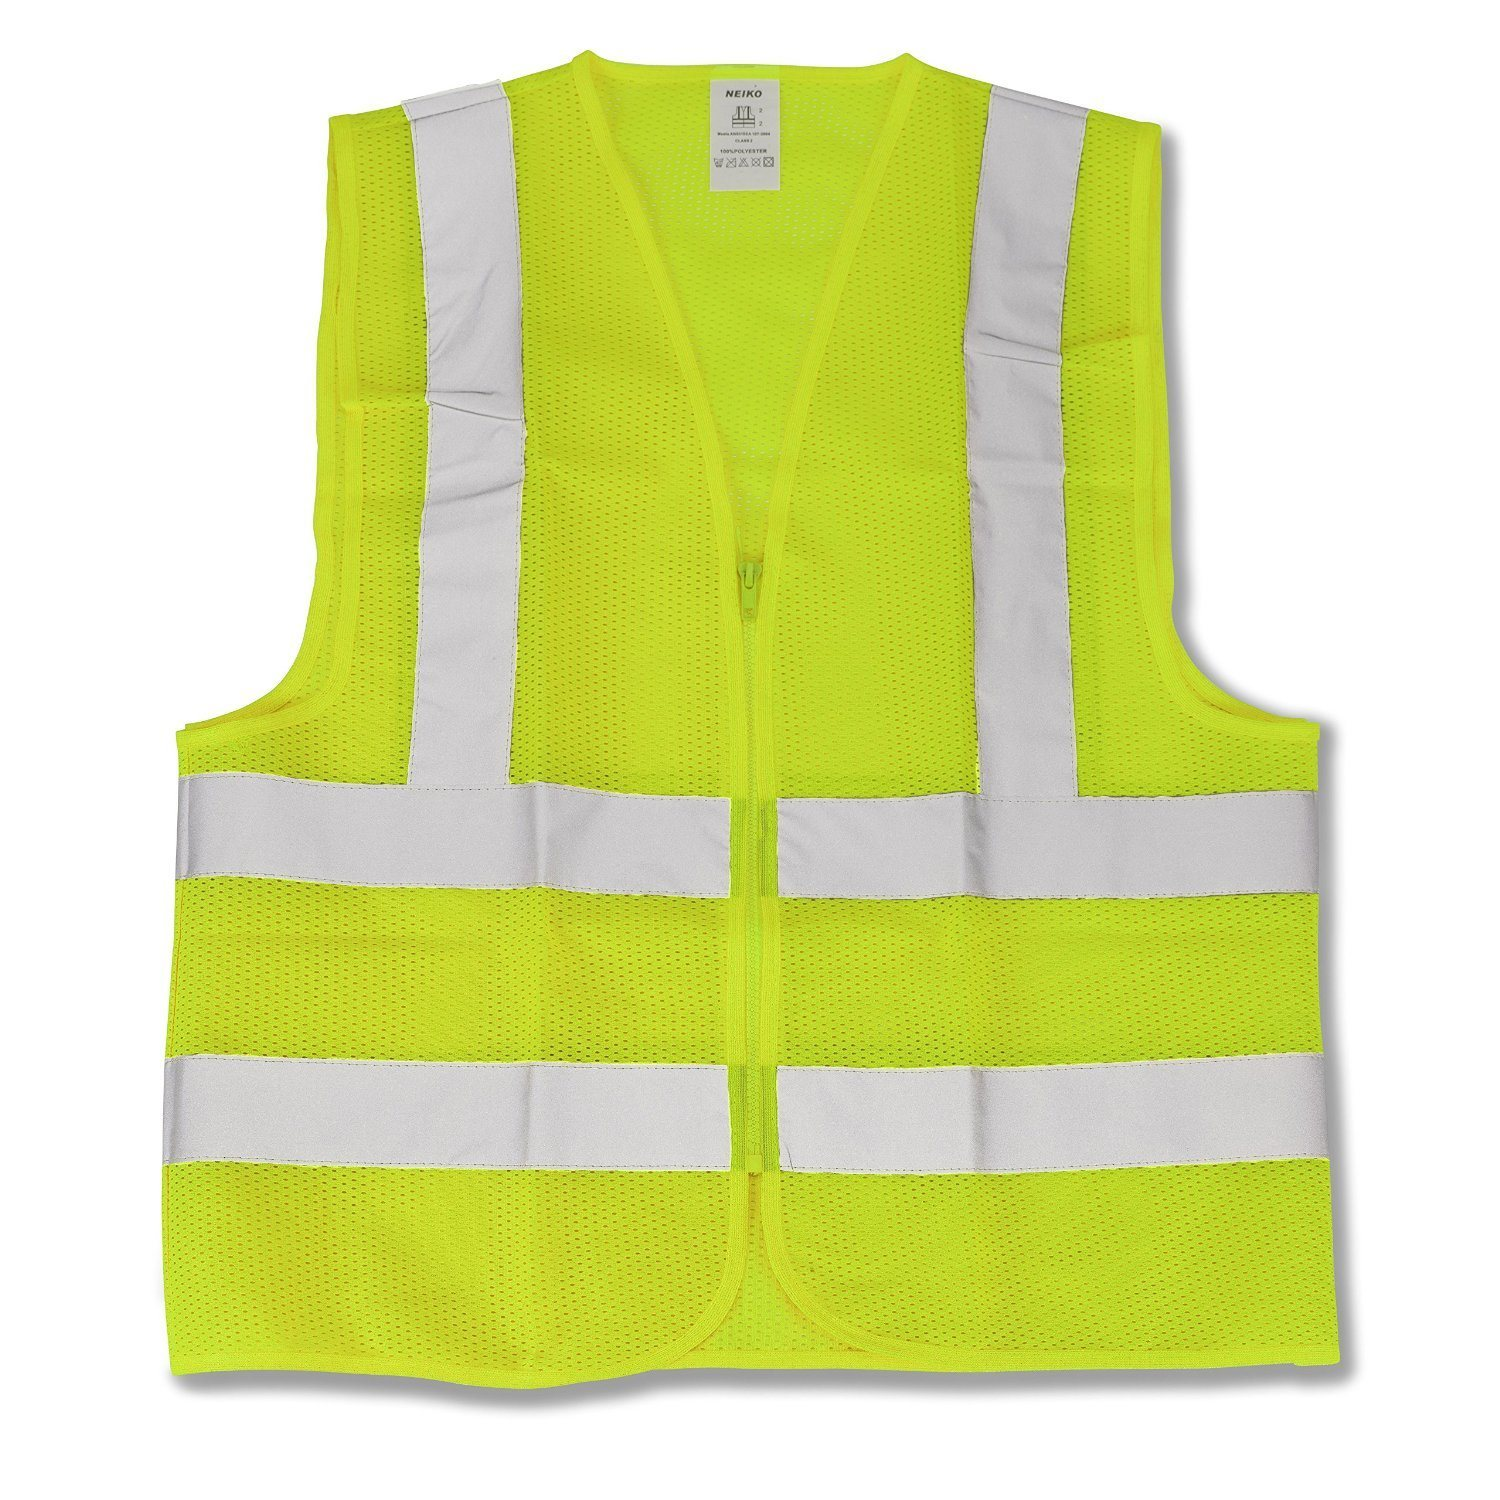 Neiko Neon Green ANSI Approved Safety Vest XLarge